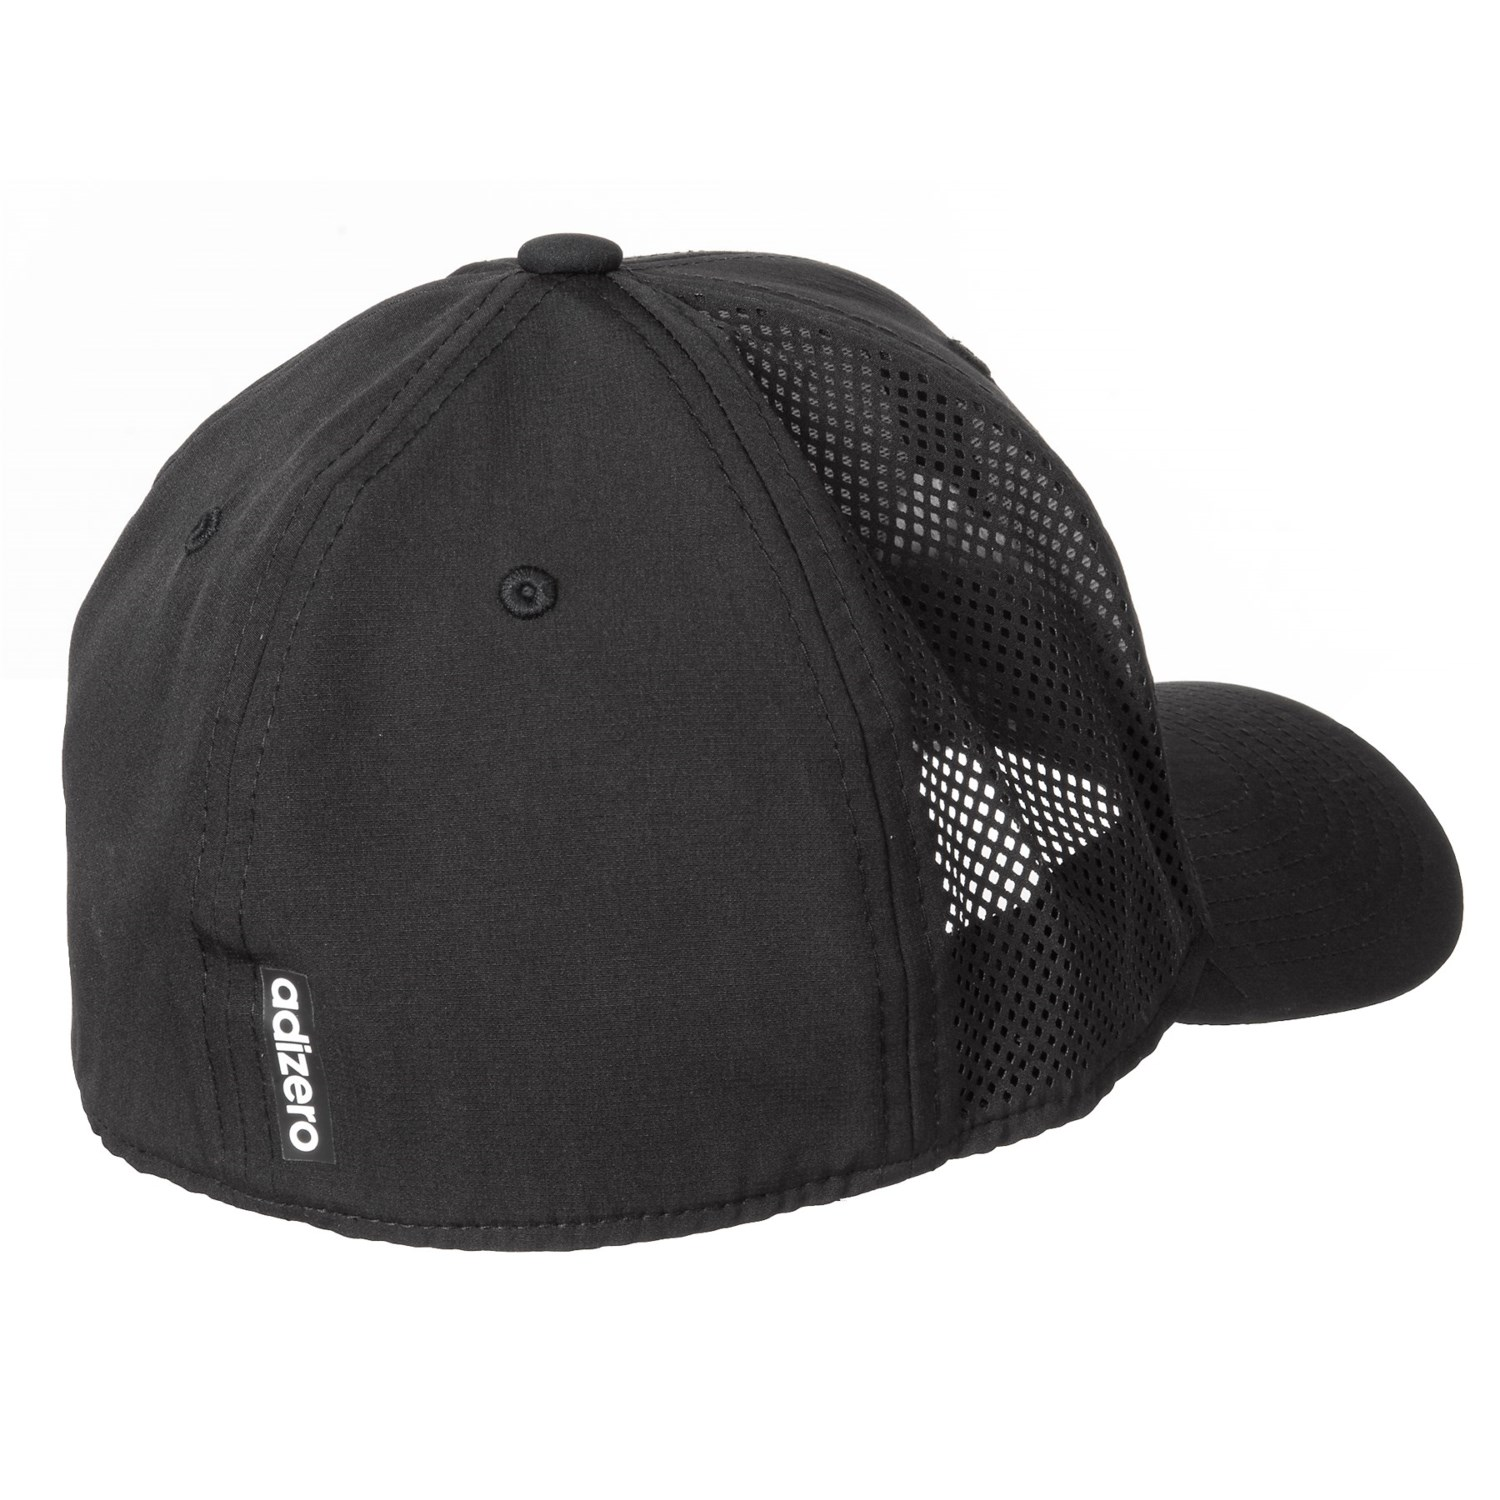 ab65dadc5a1 adidas Adizero Scrimmage Baseball Cap (For Men) - Save 23%